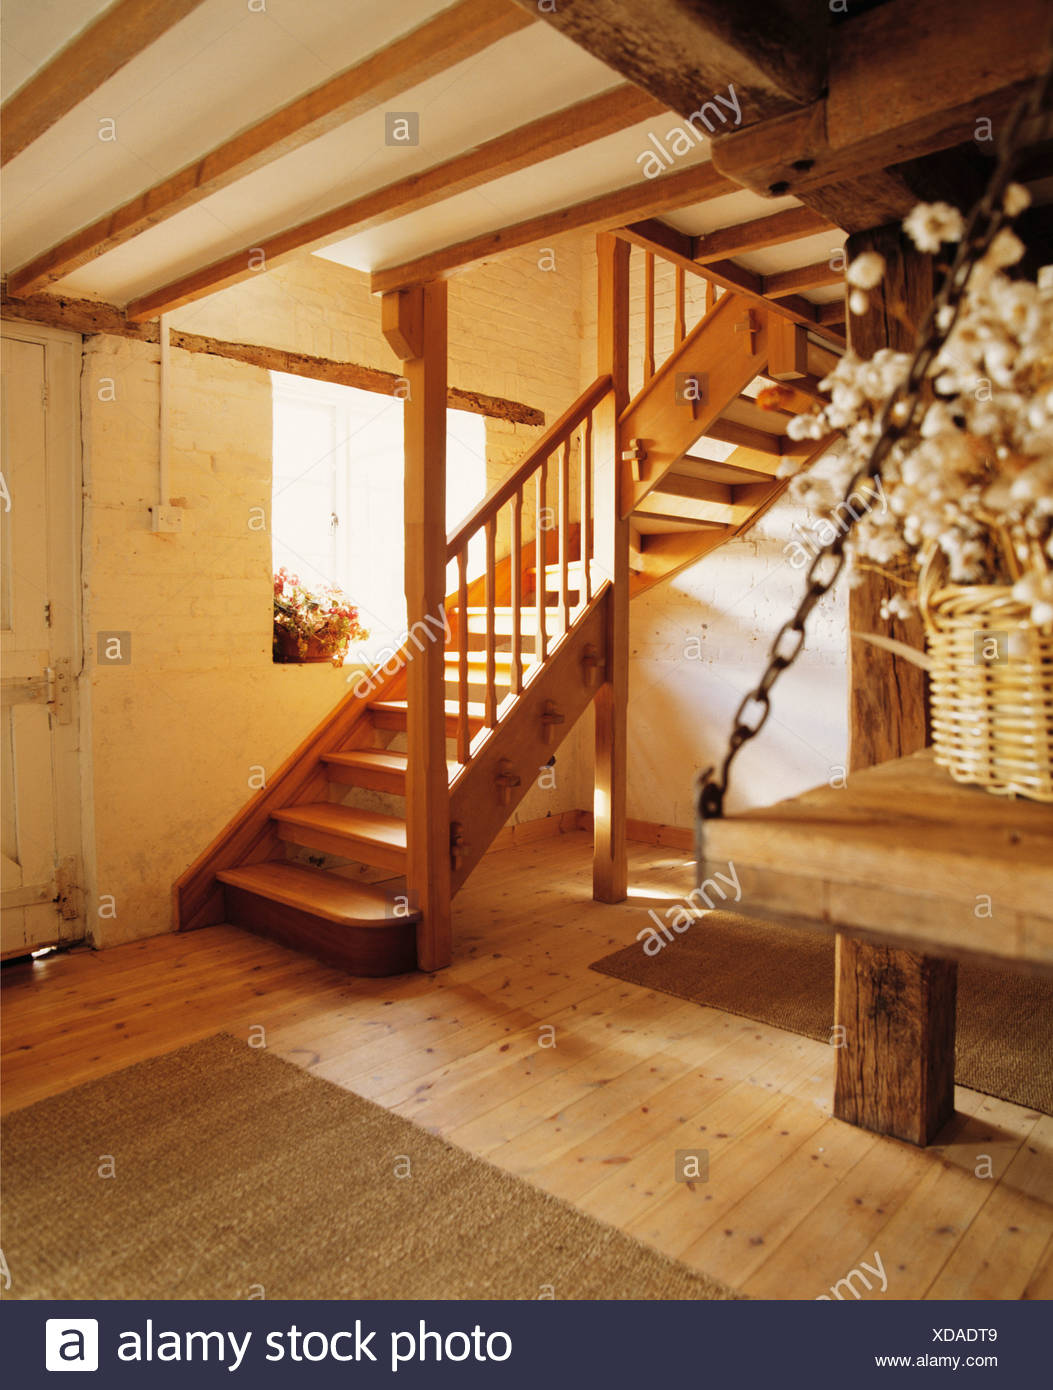 Wooden Open Tread Staircase In Cream Cottage Hall With Wooden Flooring    Stock Image